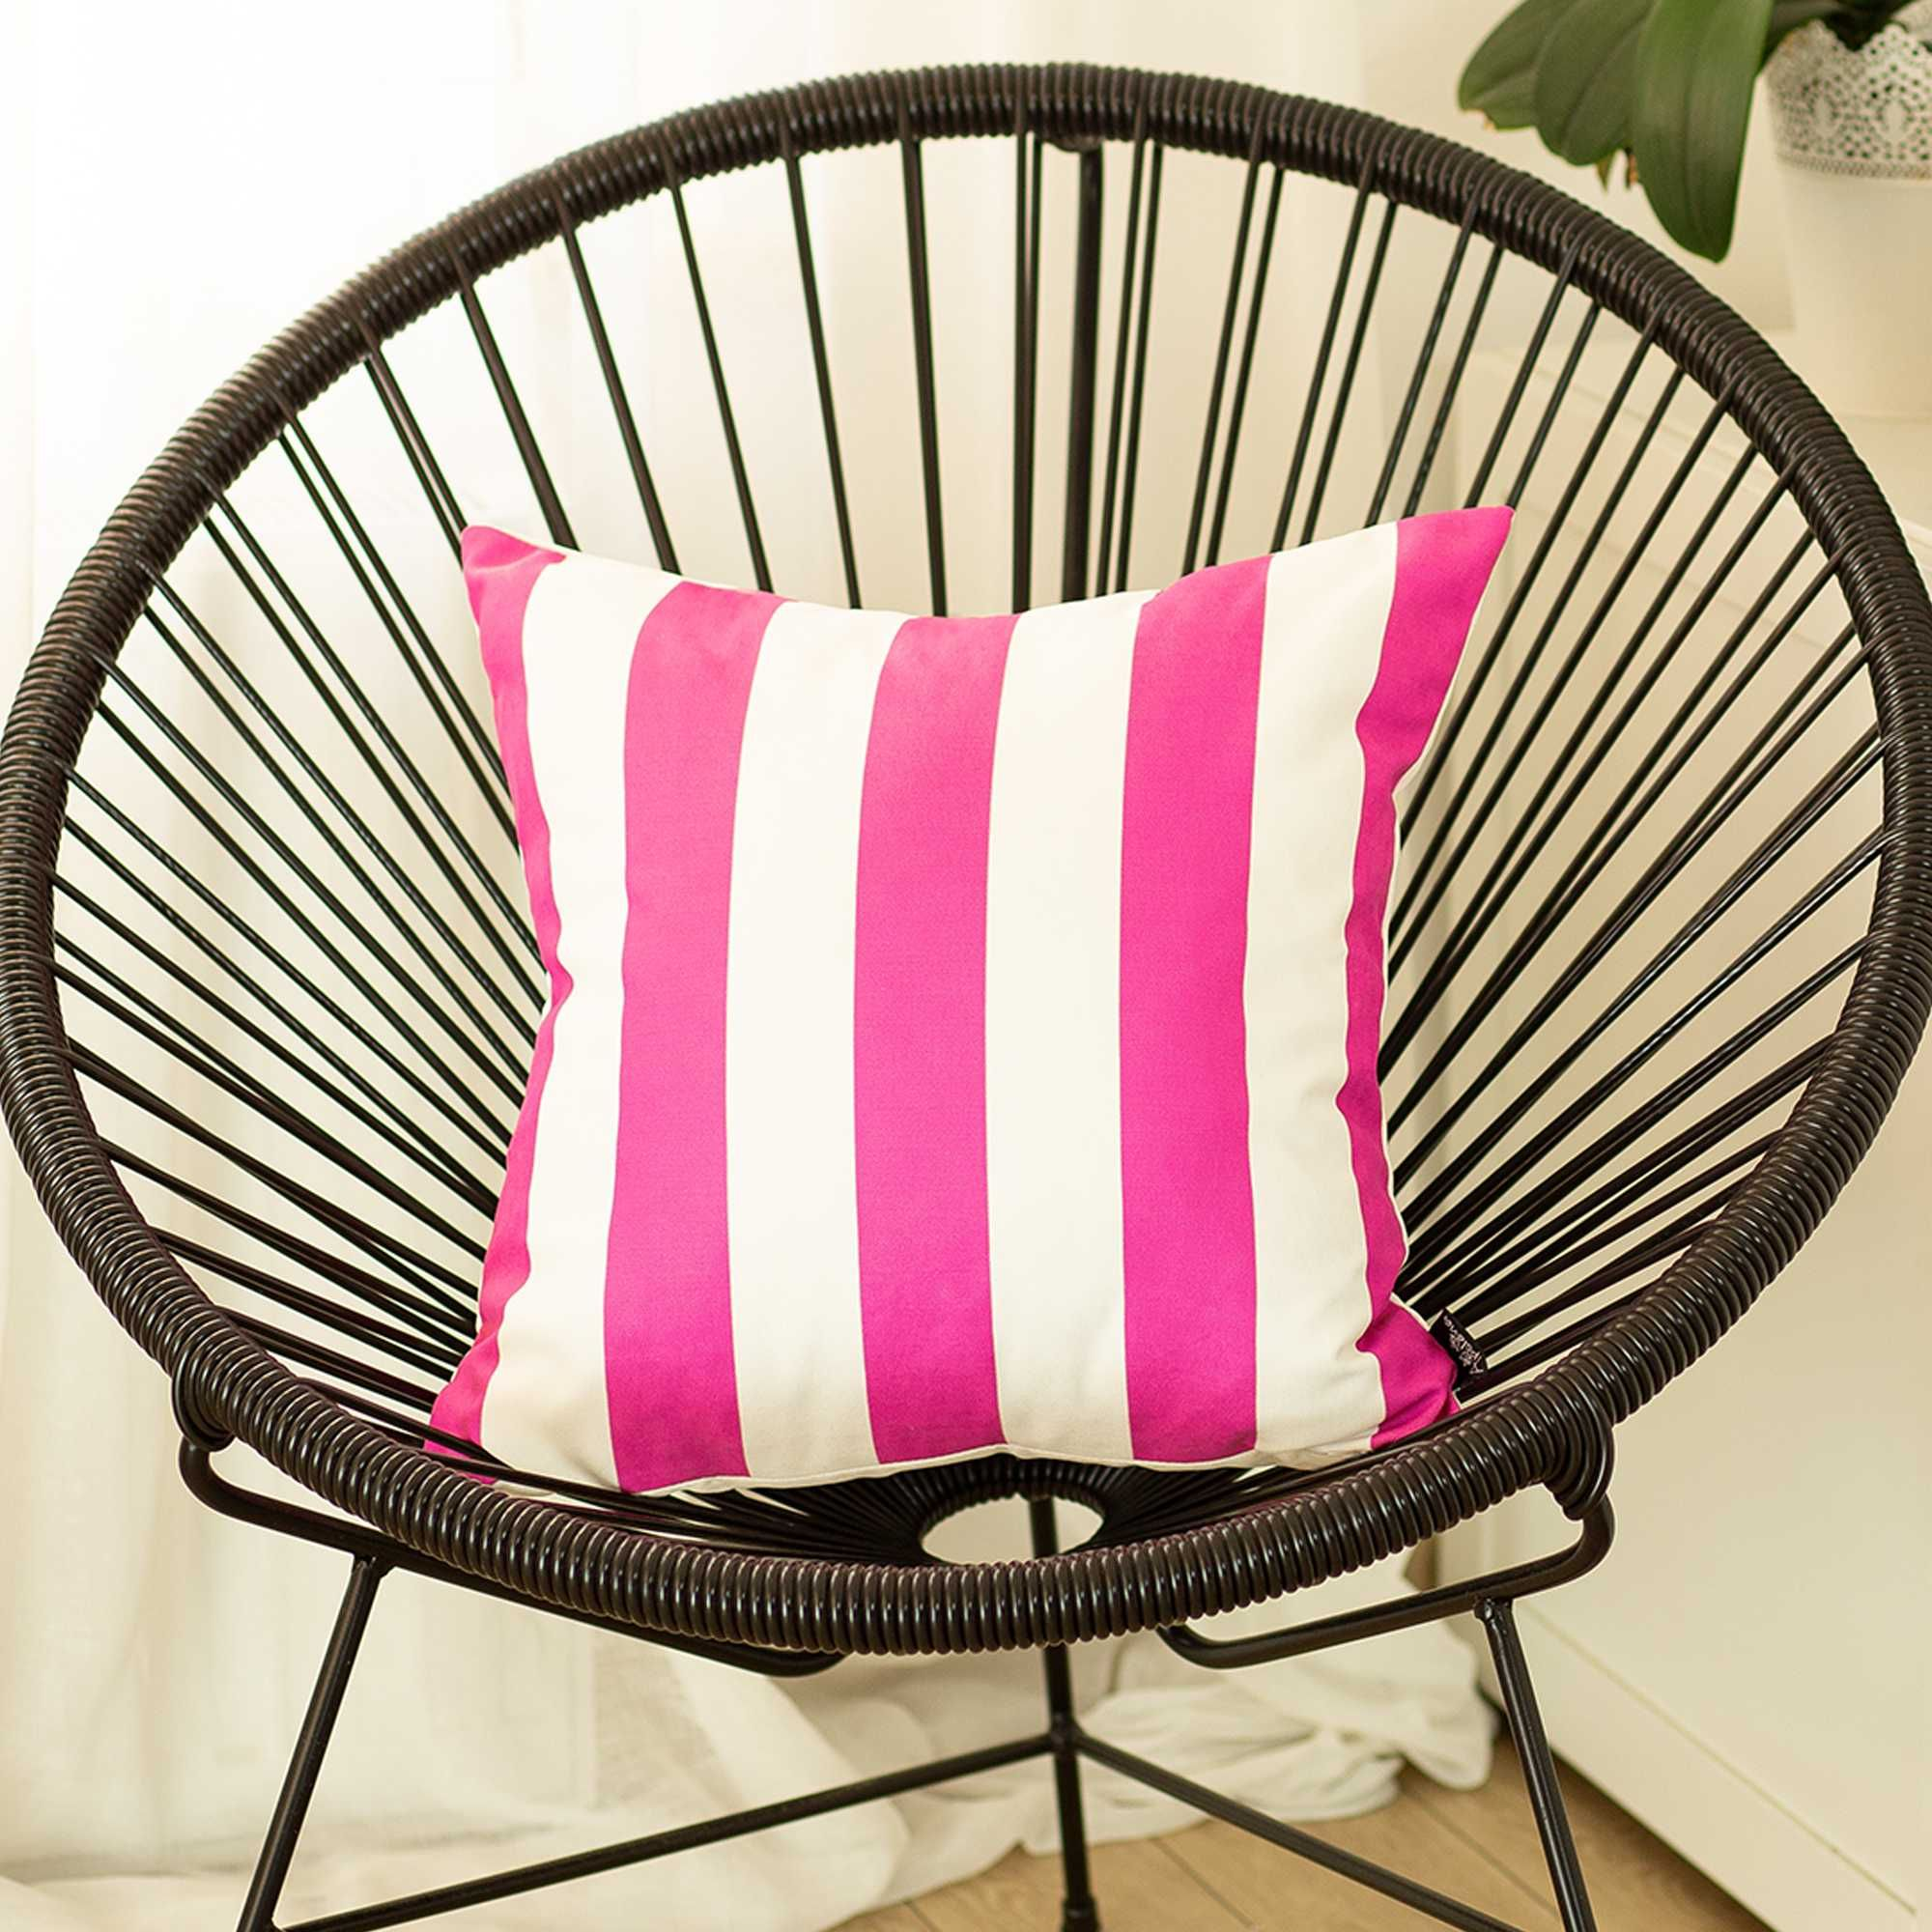 Pillow Covers - 18x18 Pink Stripes Geometric Decorative Throw Pillow Cover - Multi / Polyester